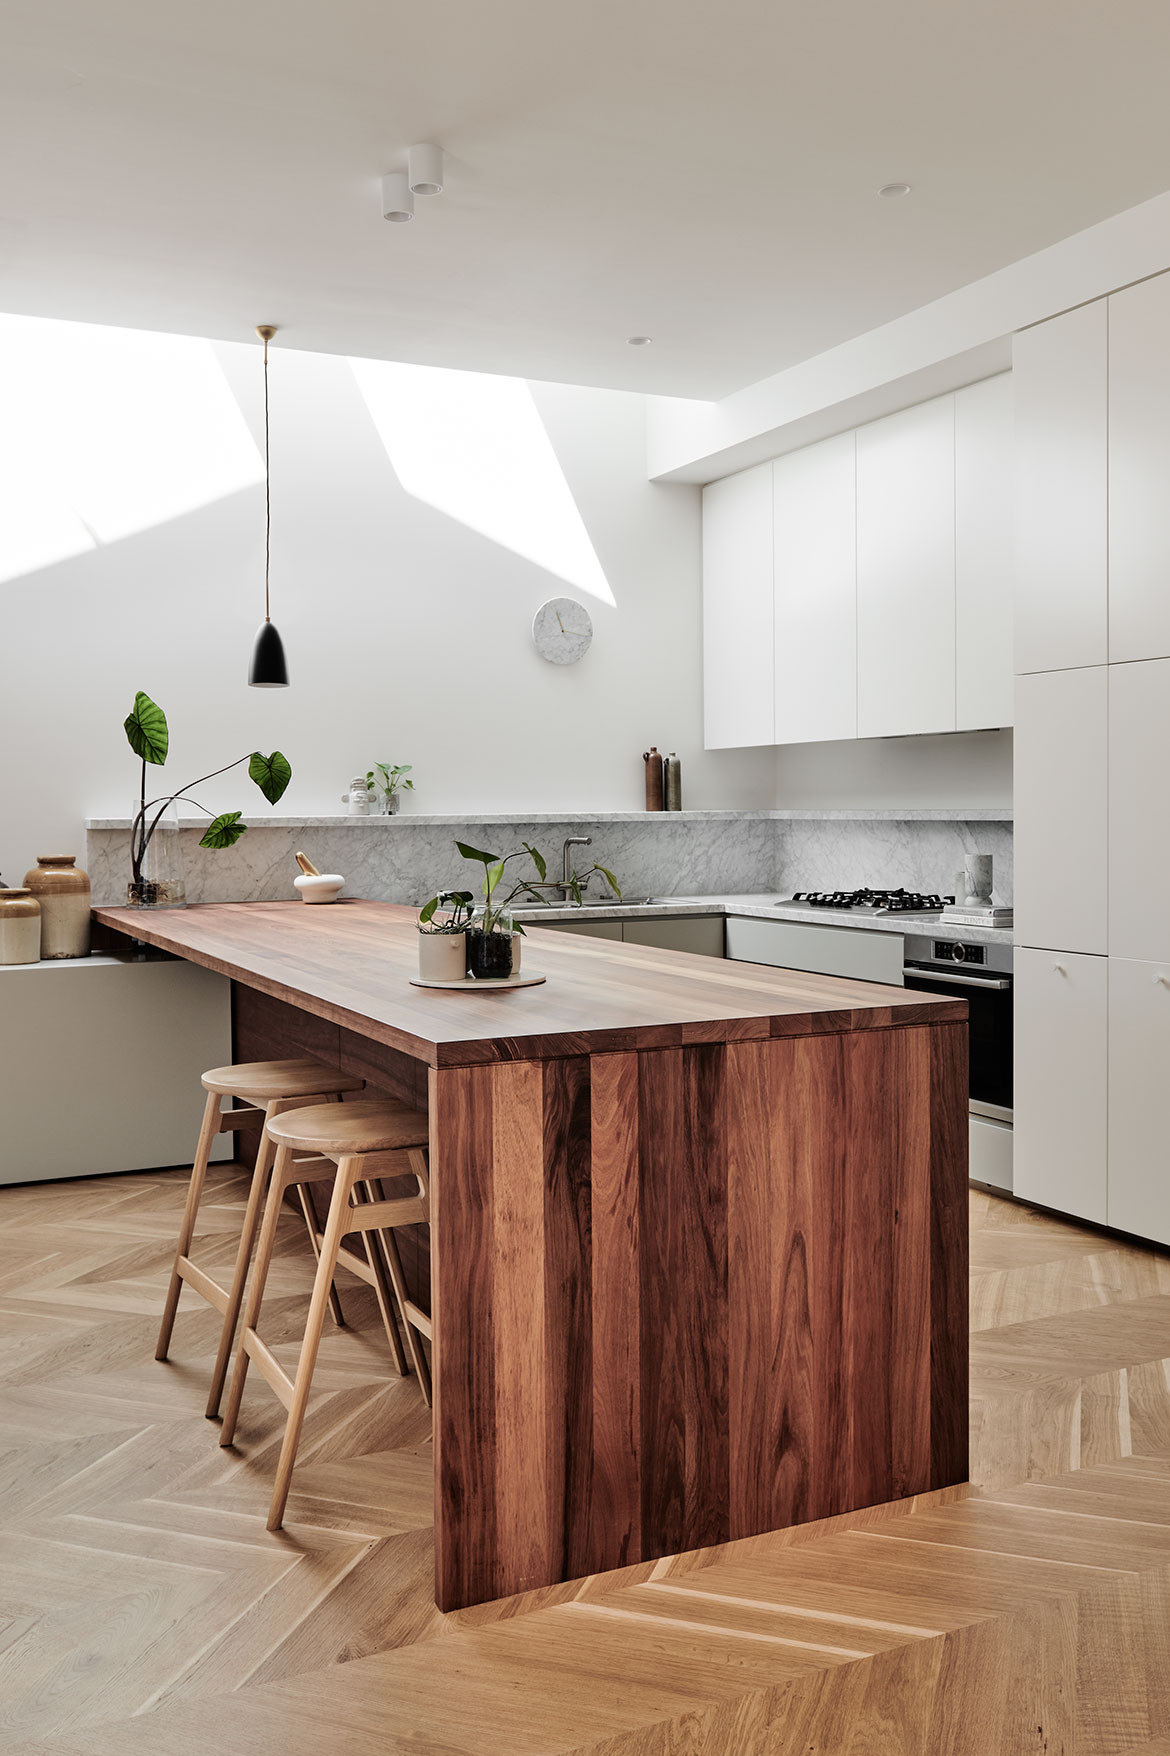 Prahran Residence Pipkorn Kilpatrick cc Tom Blachford custom joinery